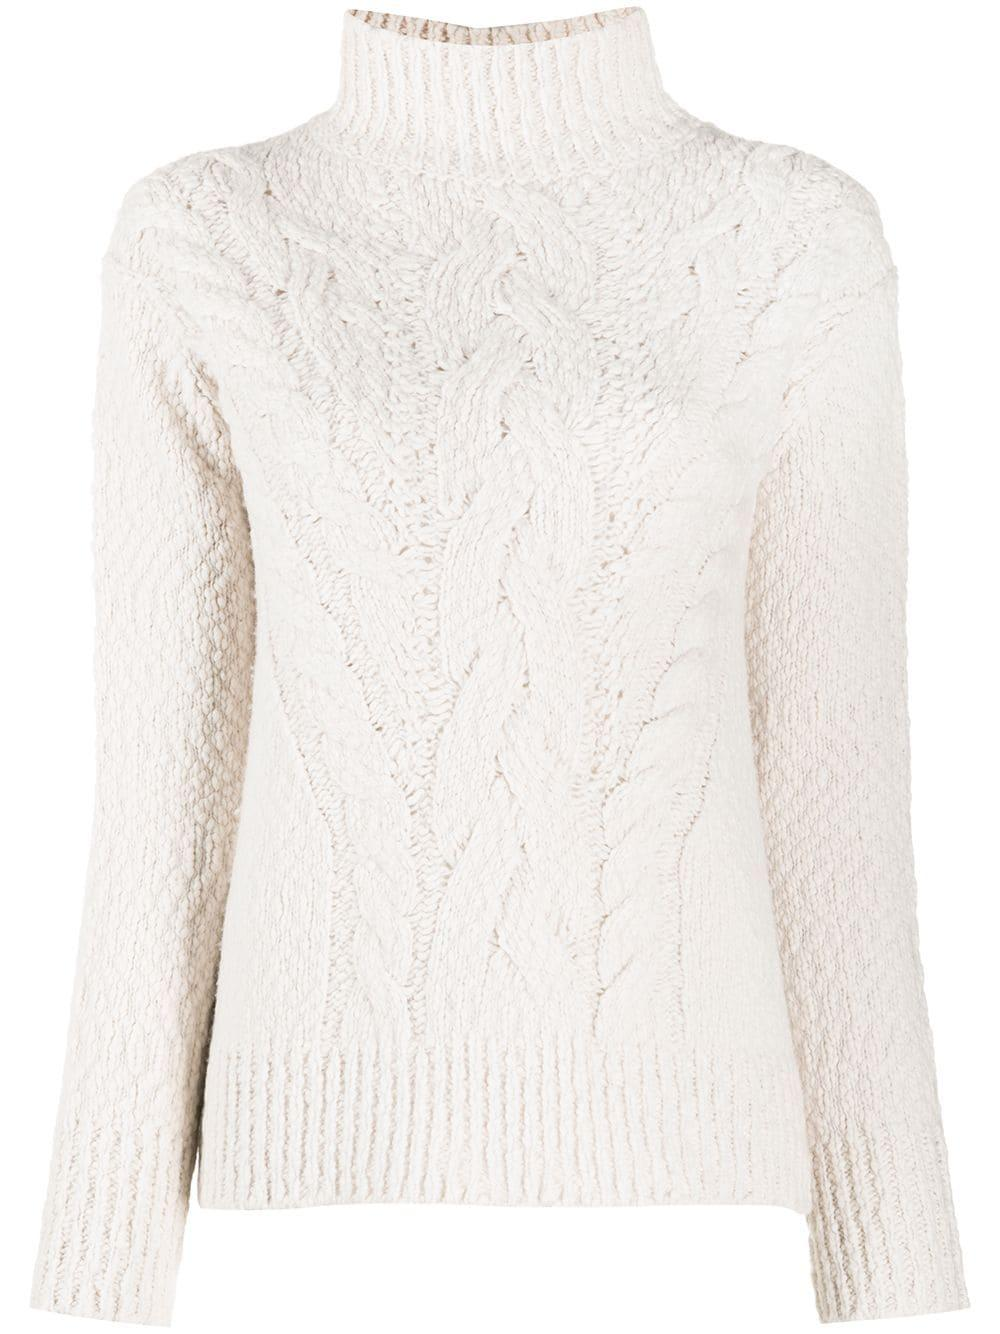 Rising Cable Turtleneck